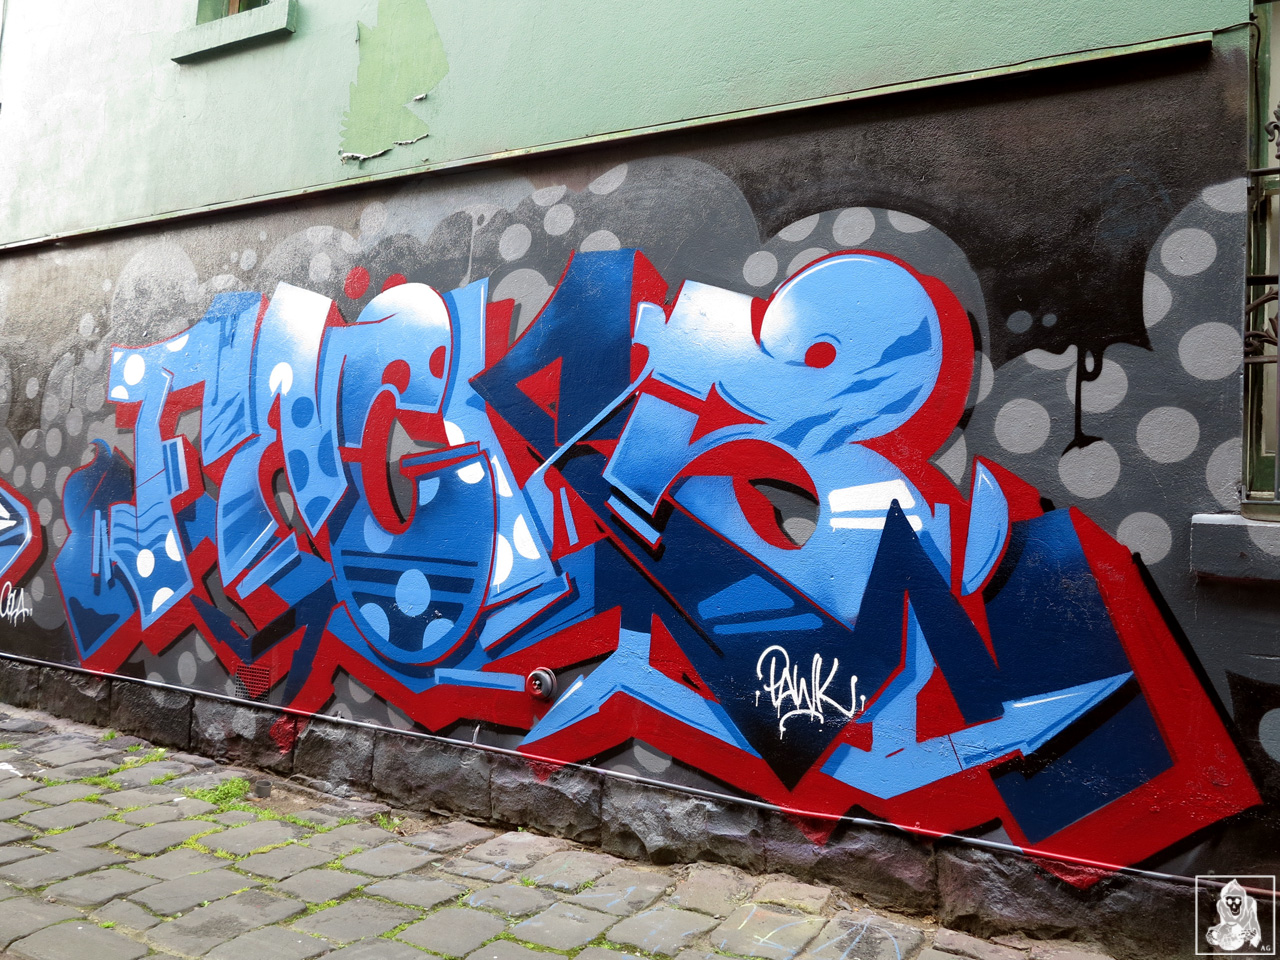 Bolts-Fecks-Collingwood-Graffiti-Melbourne-Arty-Graffarti7